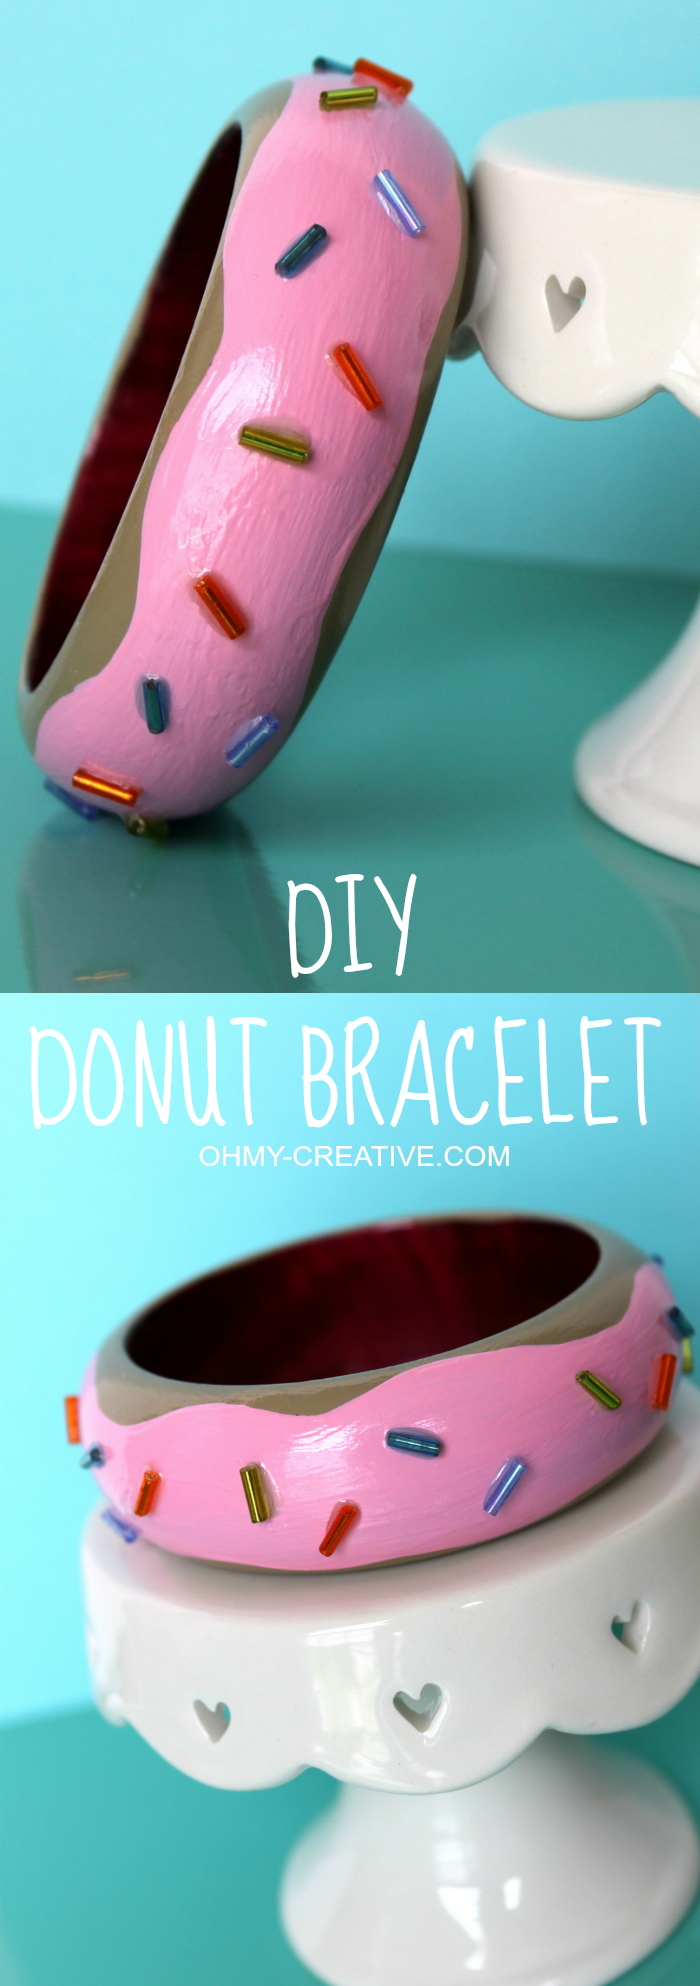 Fun DIY Donut Bracelet - dress it up or dress it down! It's a perfect  whimsical accessory!  |  OHMY-CREATIVE.COM